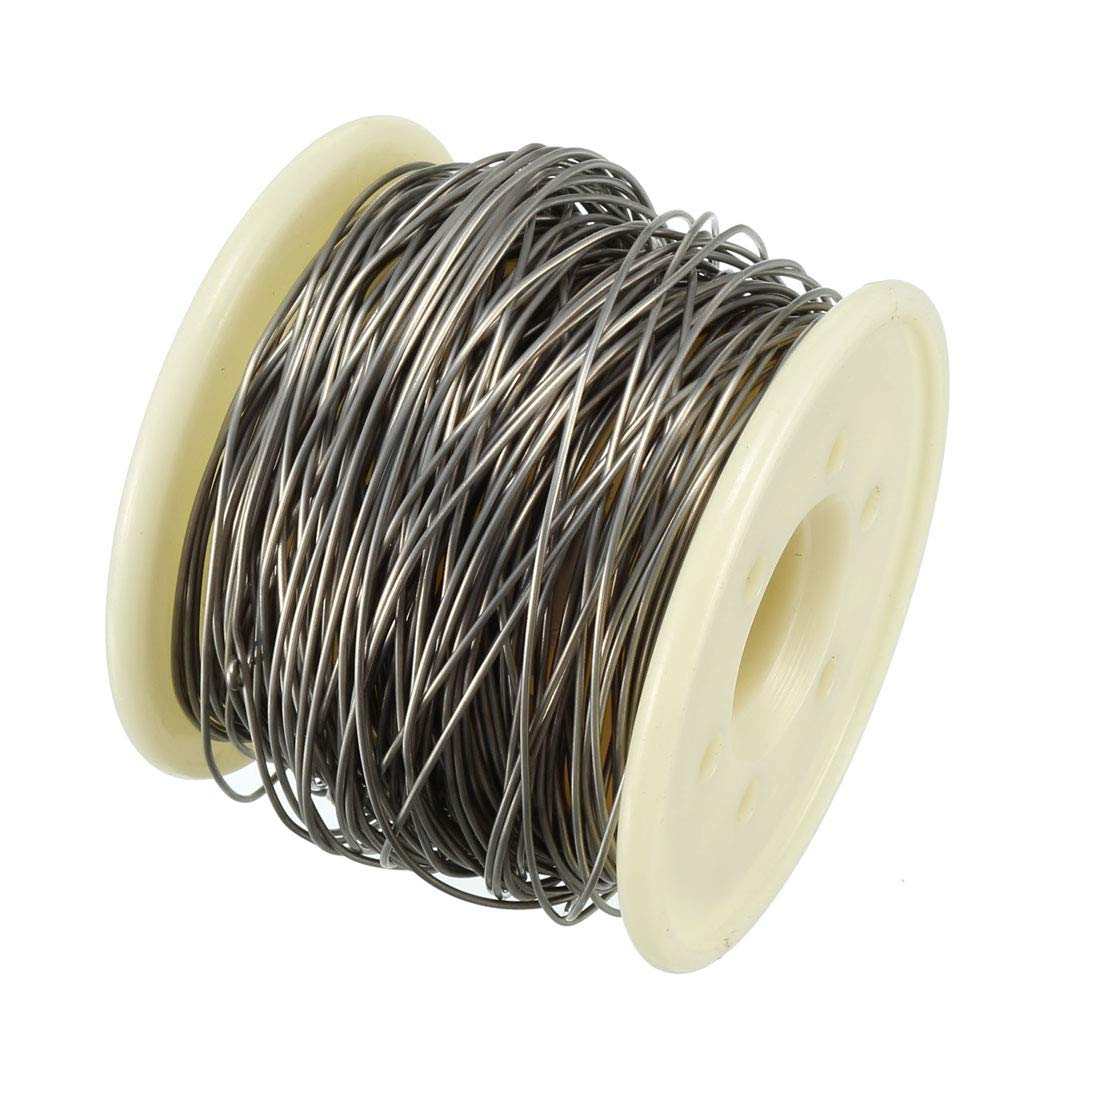 uxcell 0.7mm 21AWG Heating Resistor Wire Nichrome Resistance Wires for Heating Elements 65.6ft by uxcell